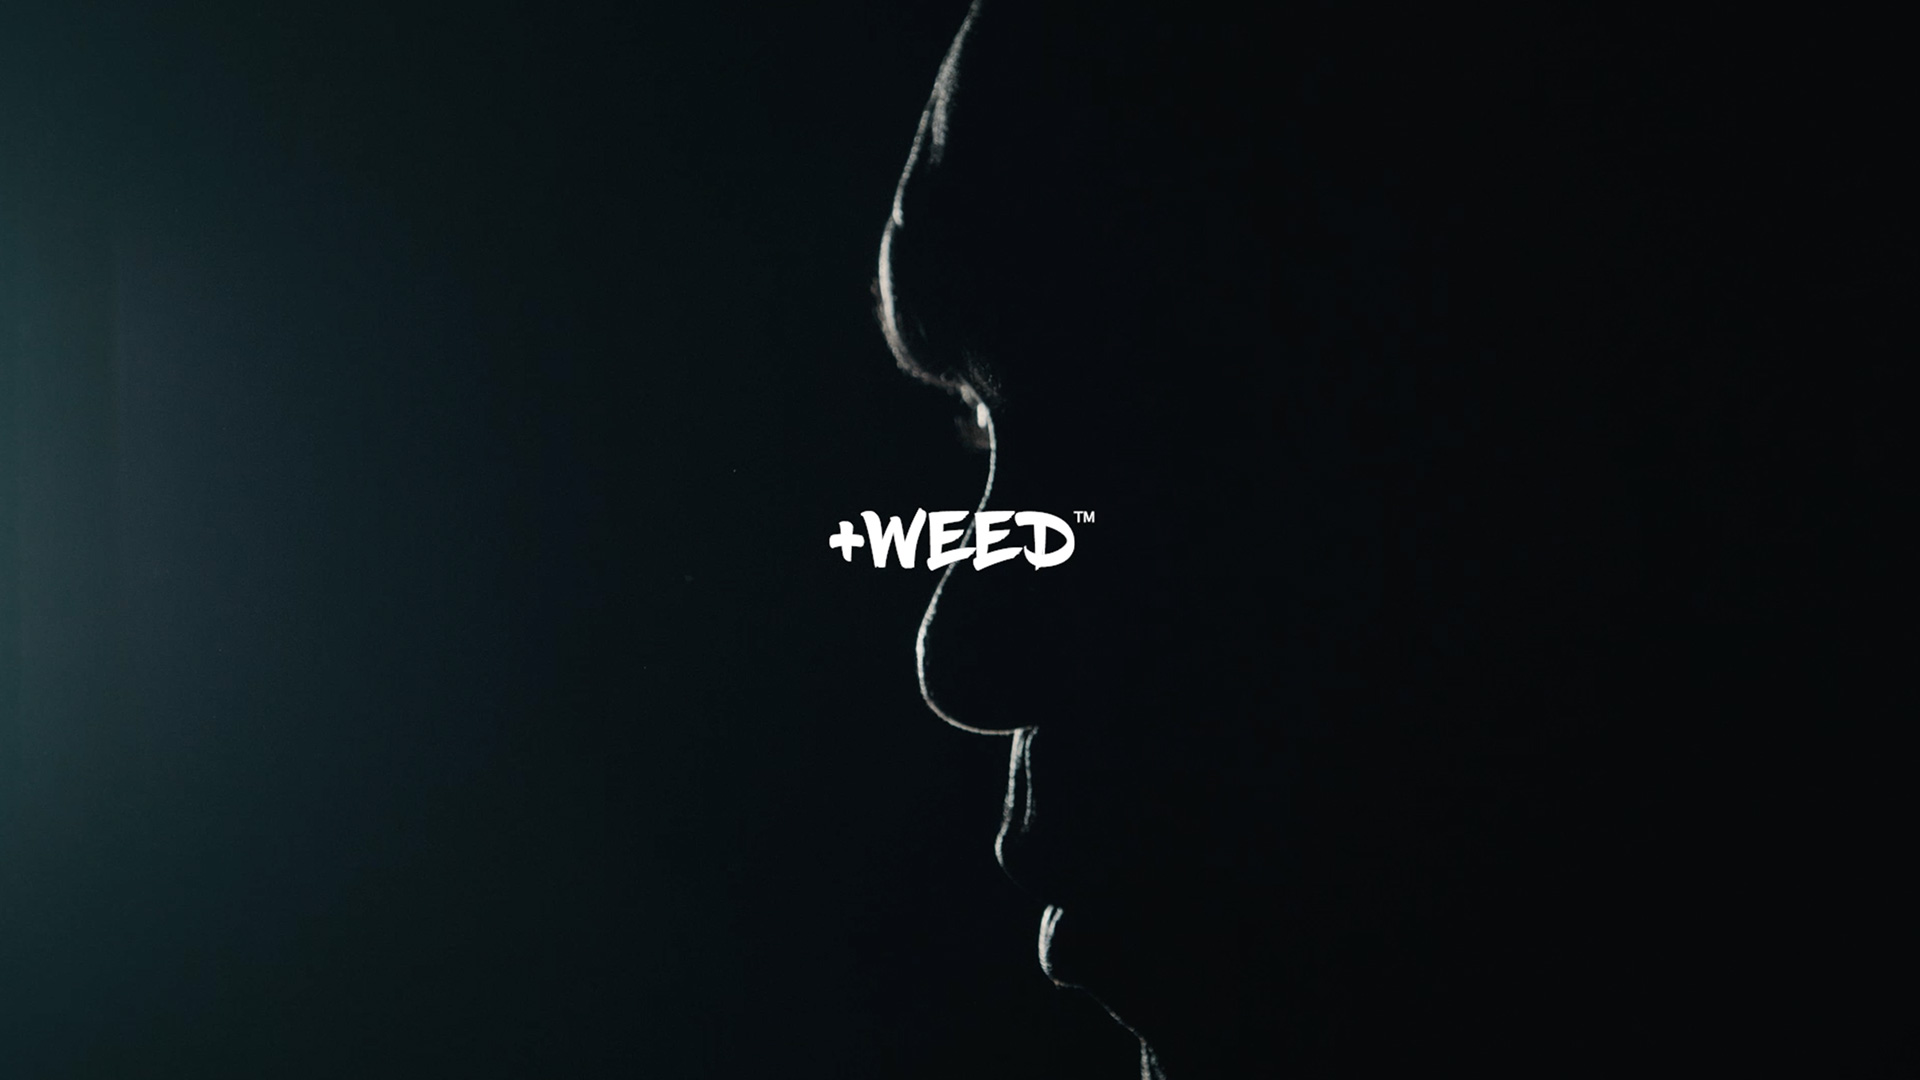 +WEEDボブ・サップ「ジム篇」